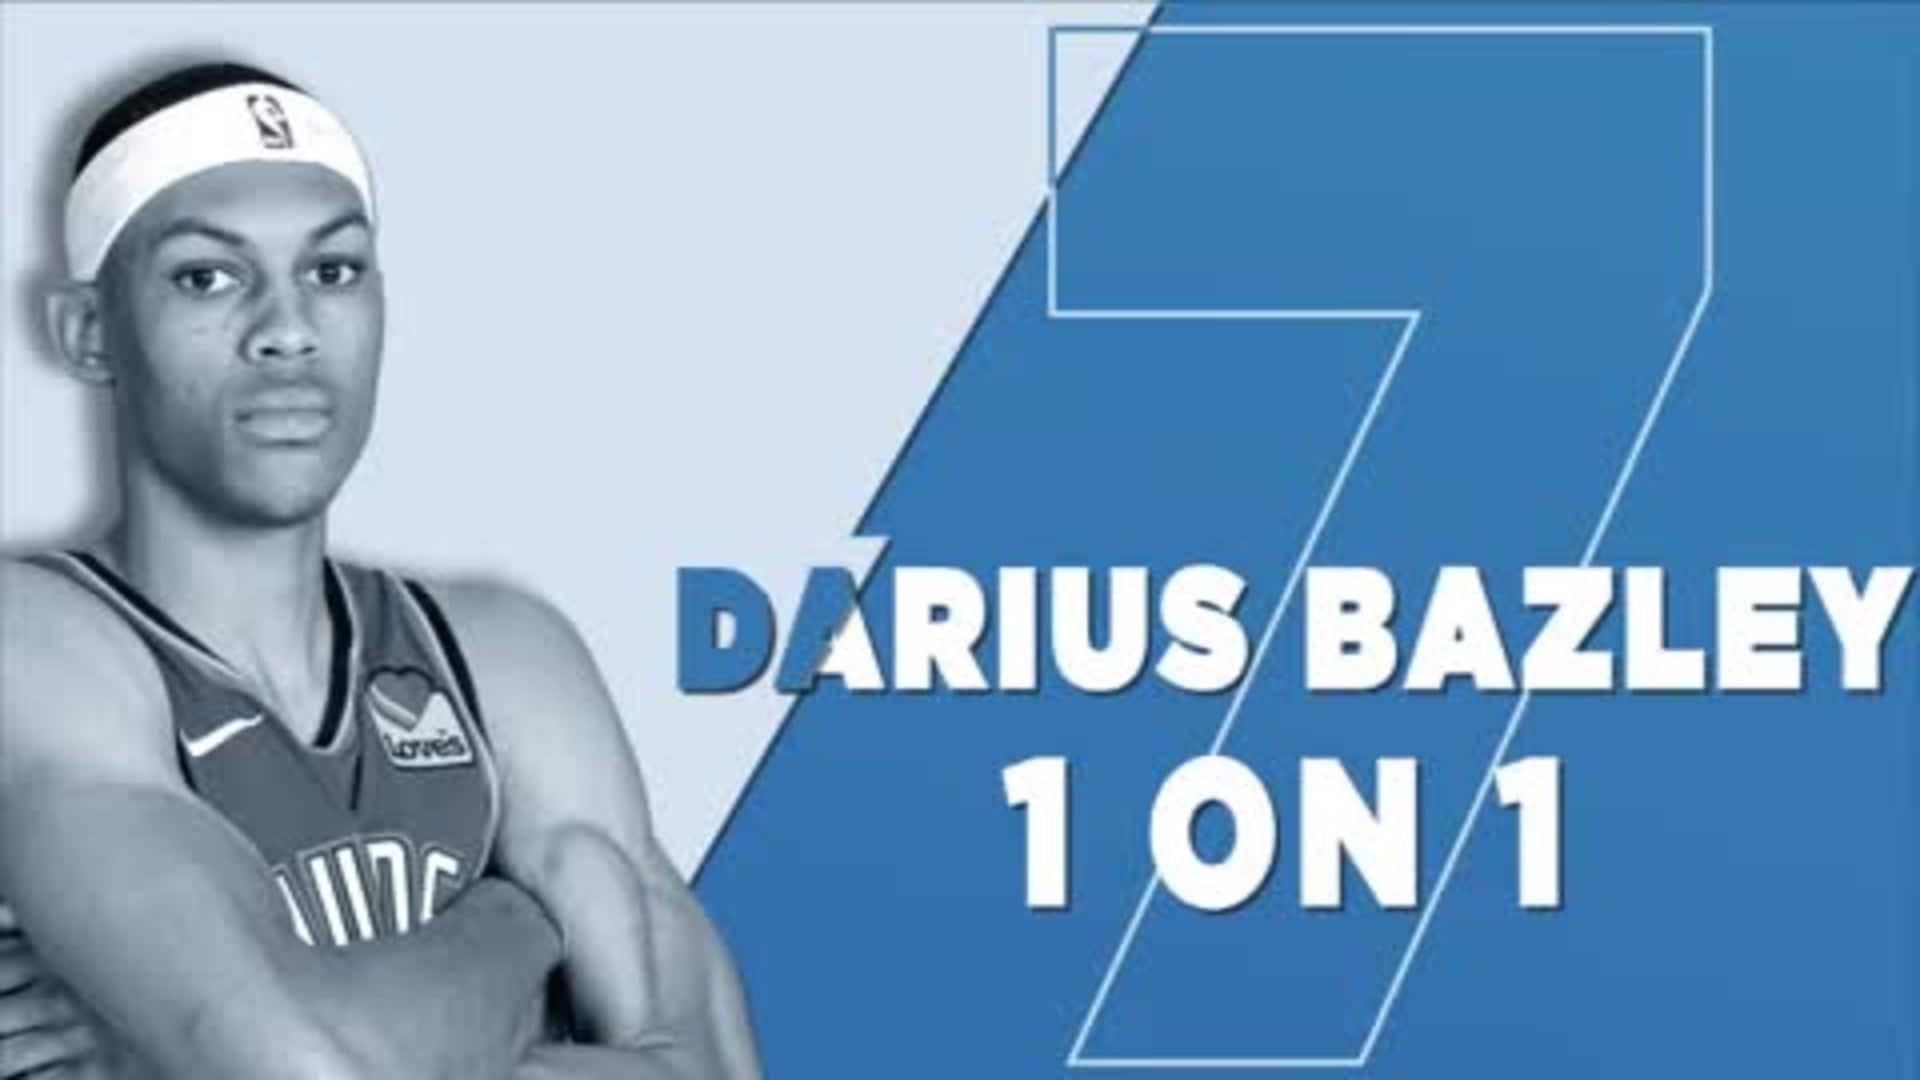 1-on-1: Darius Bazley